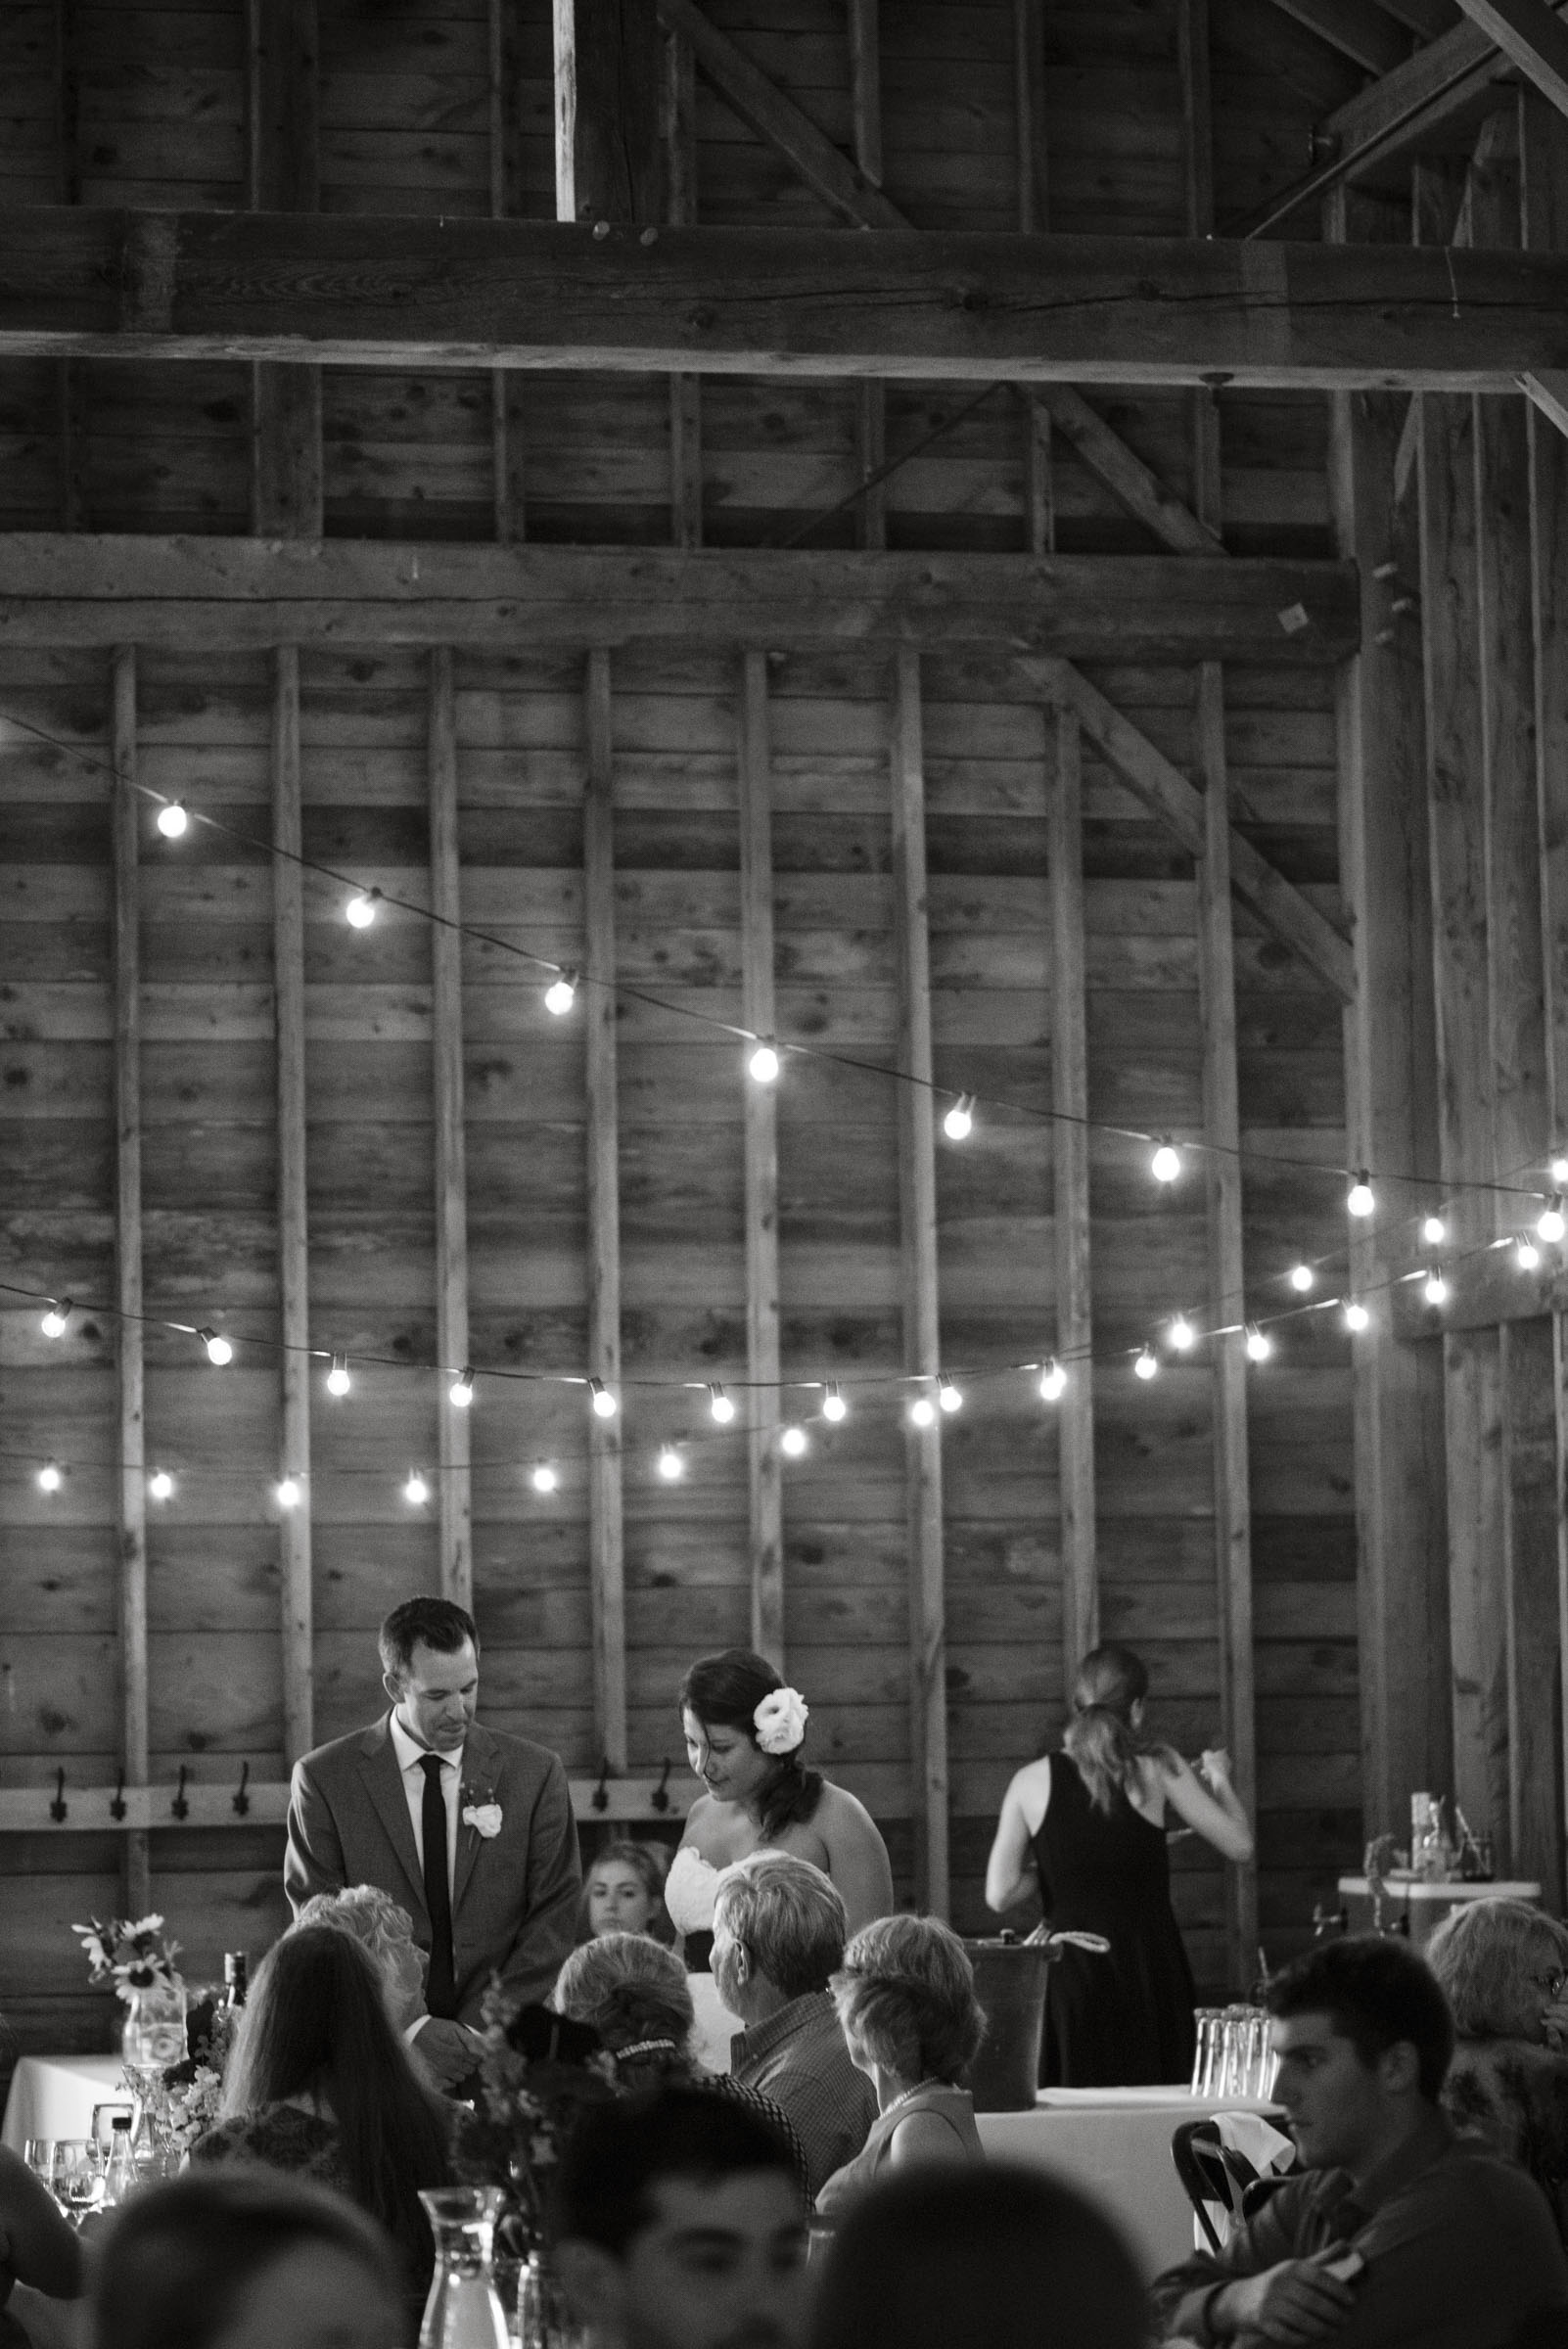 08232014-Chris&VanessaWedding-JuliaLuckettPhotography-401